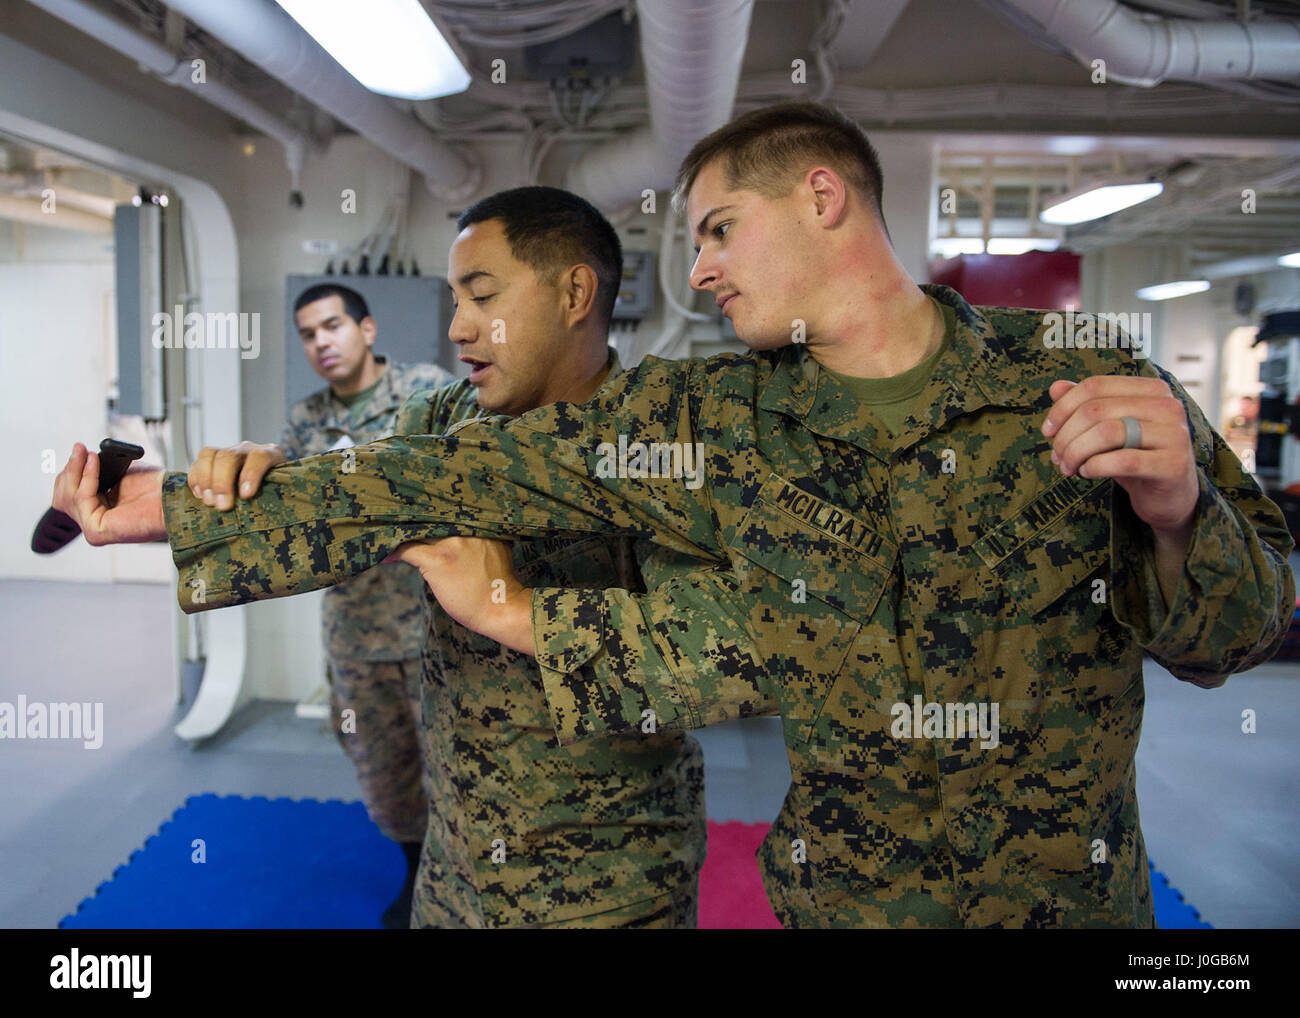 170410-N-ZQ712-0055 PACIFIC OCEAN (April 10, 2017) Marine Lance Cpl. Stefan Mcilrath (right) and Staff Sgt. Kaluaokal - Stock Image